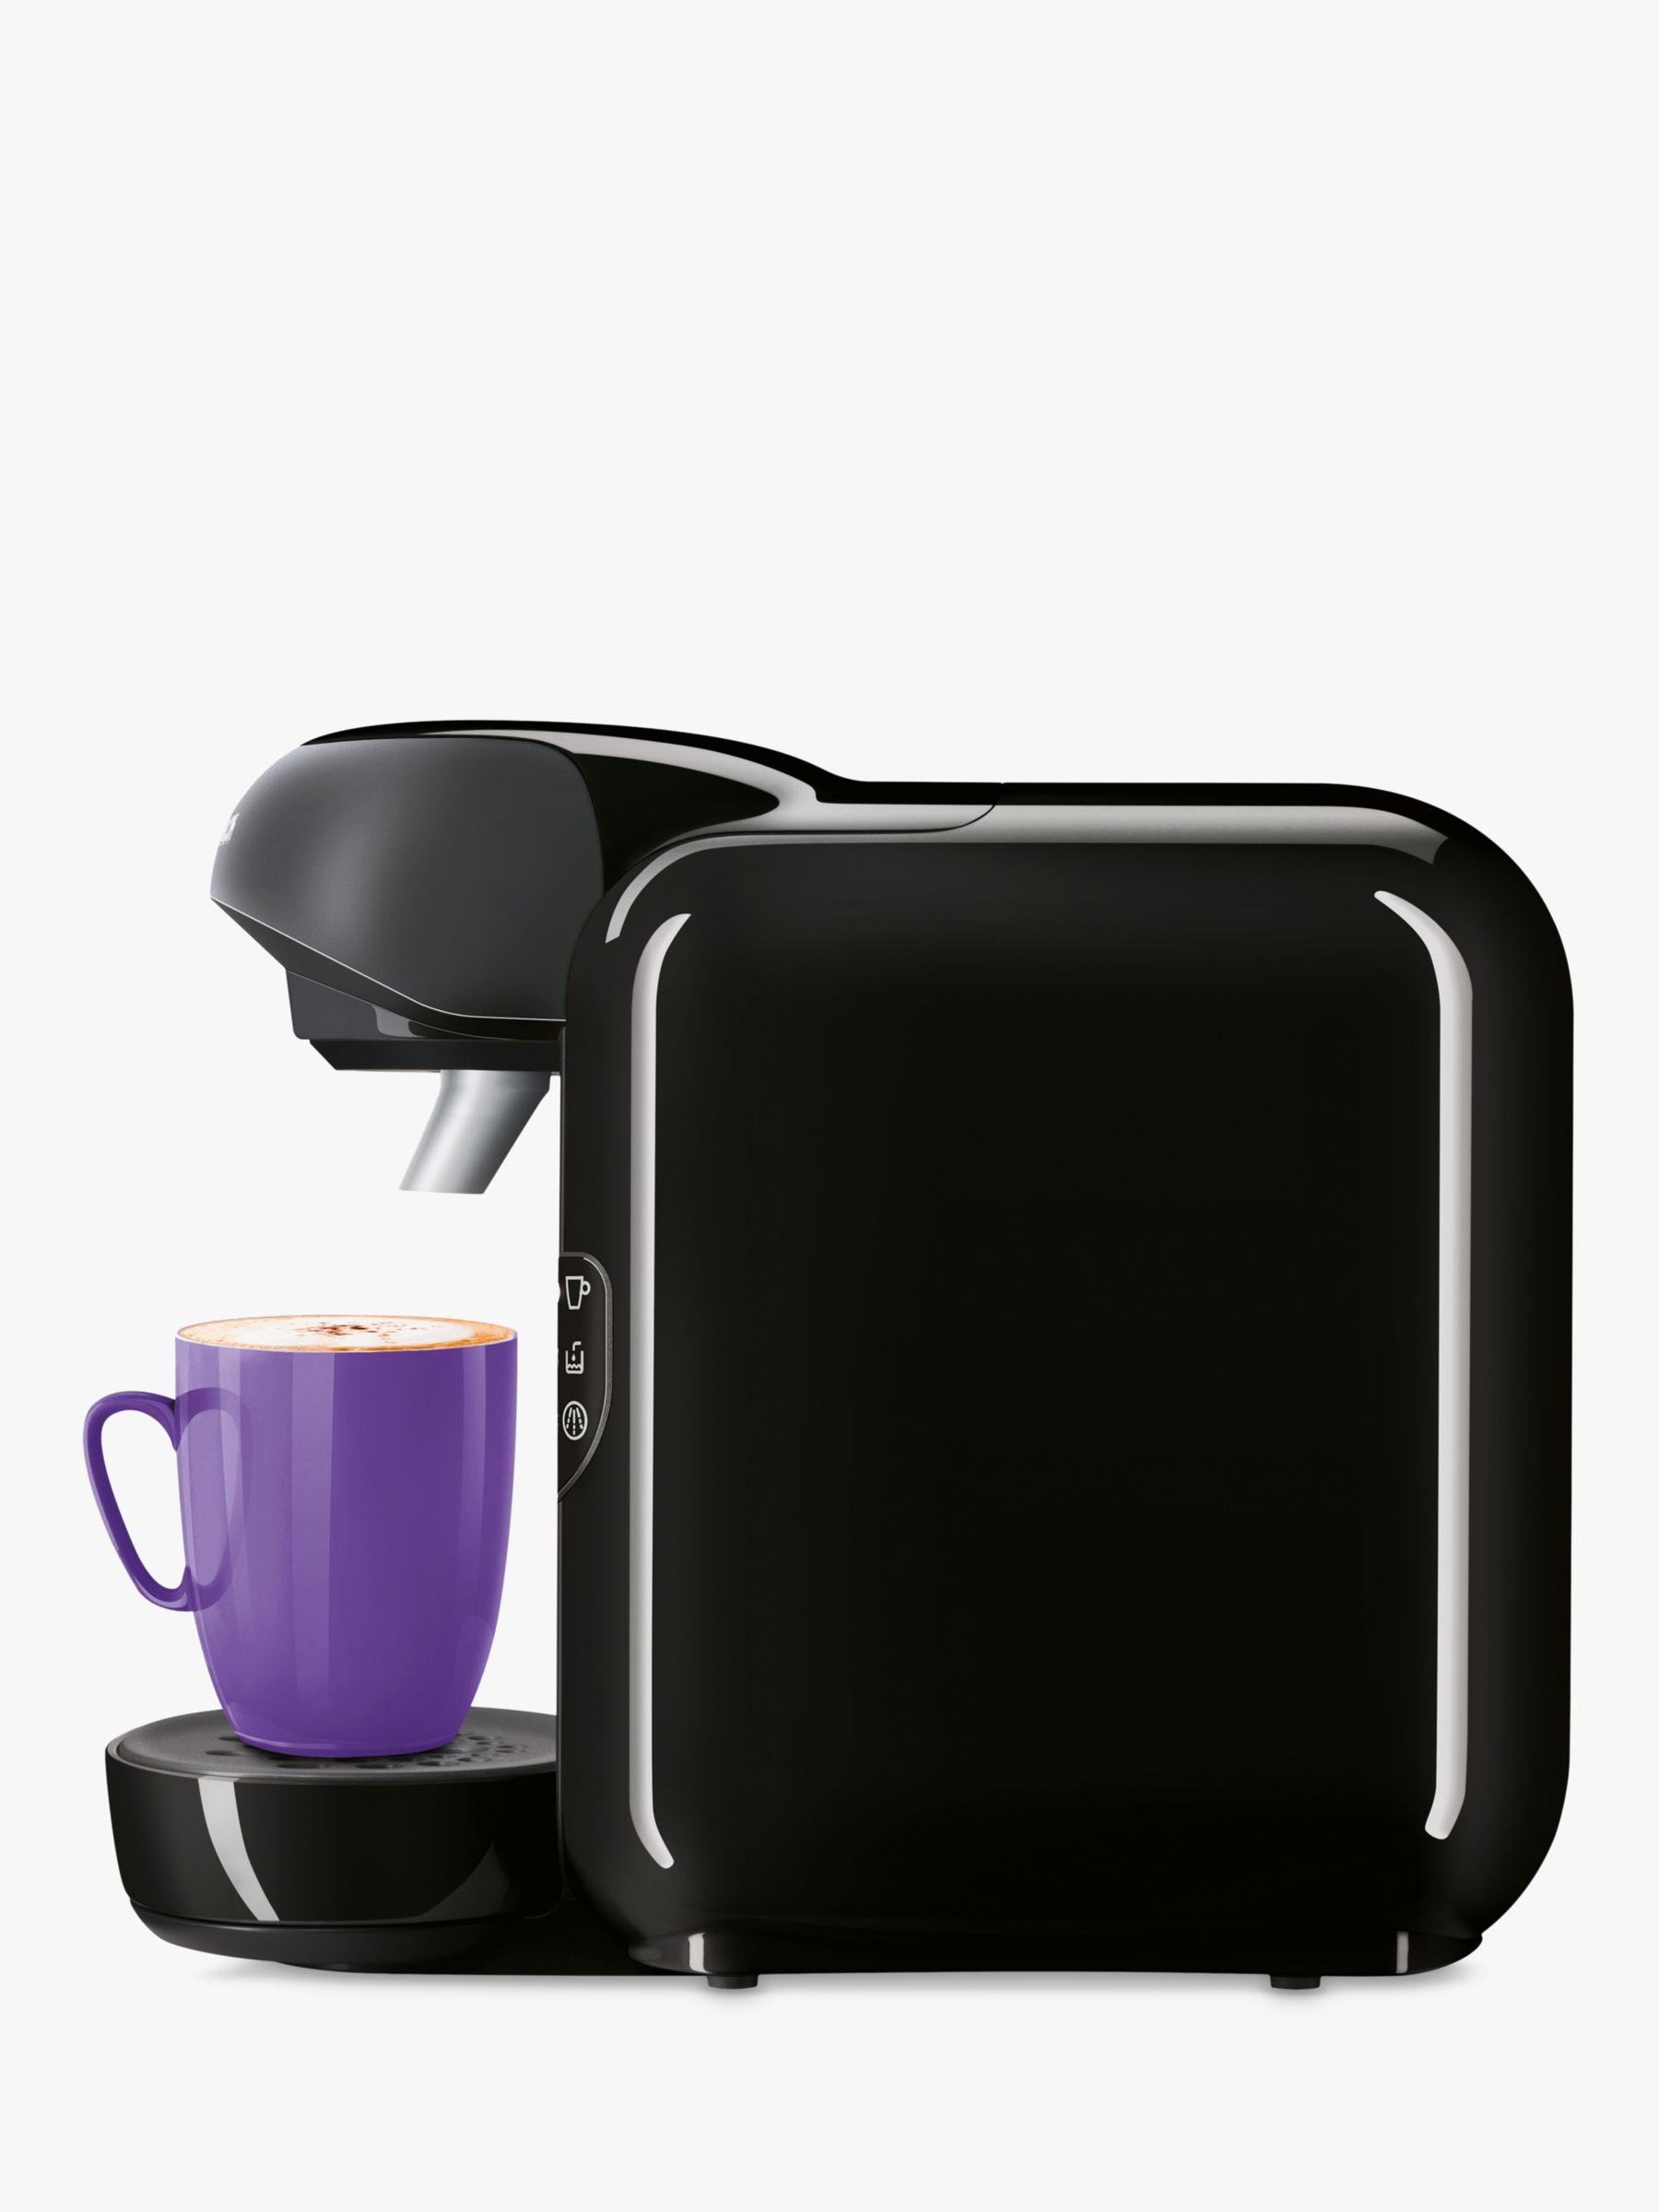 John Lewis Bosch Tassimo Coffee Maker : Buy Tassimo Vivy II Coffee Machine by Bosch, Black John Lewis